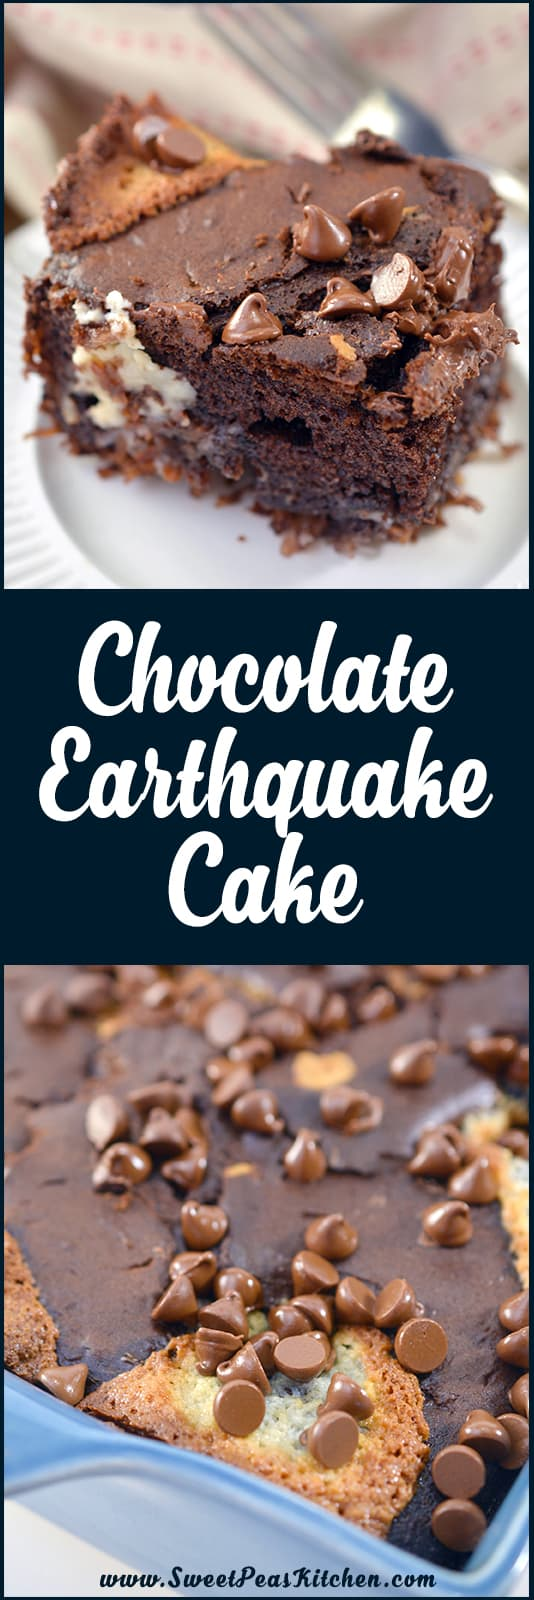 Chocolate Earthquake Cake Recipe